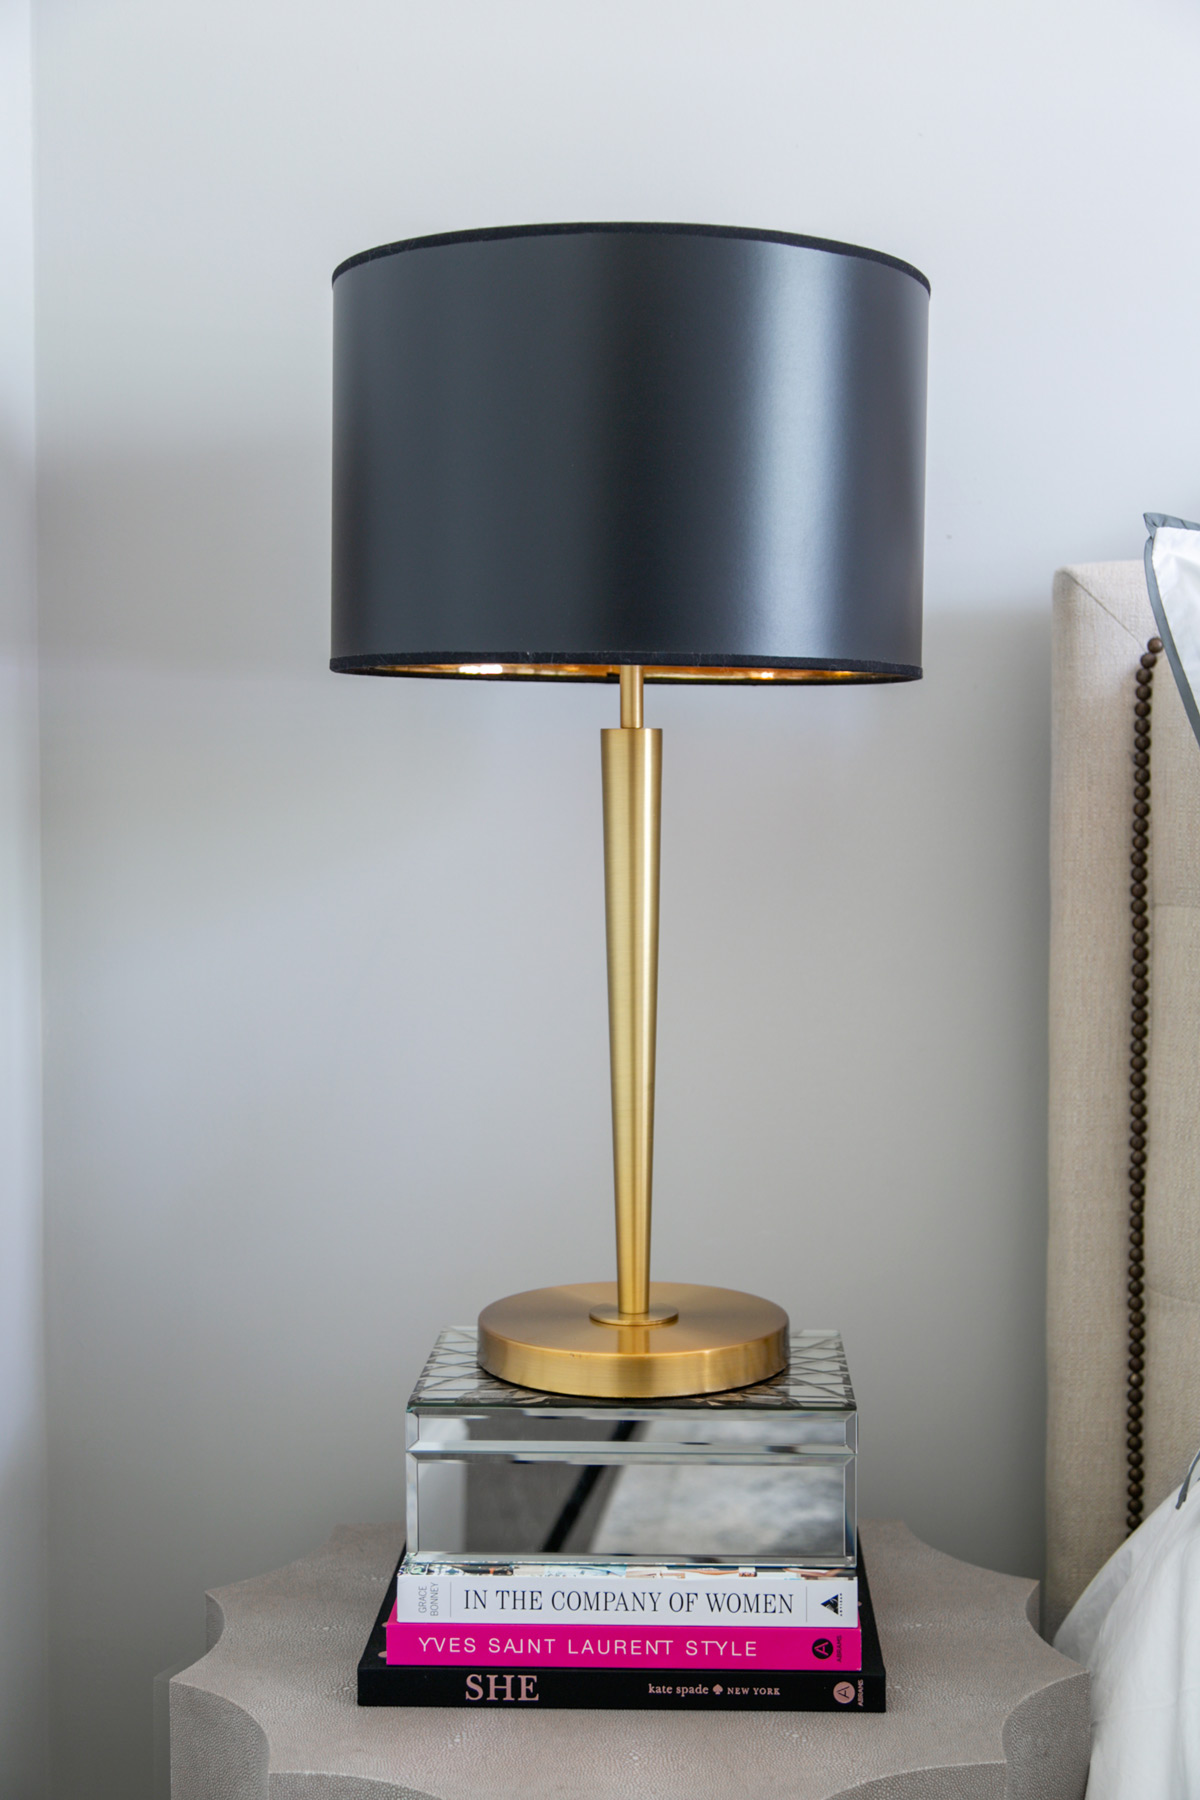 Concrete bedside table with black and brass table lamp sitting on a stack of books